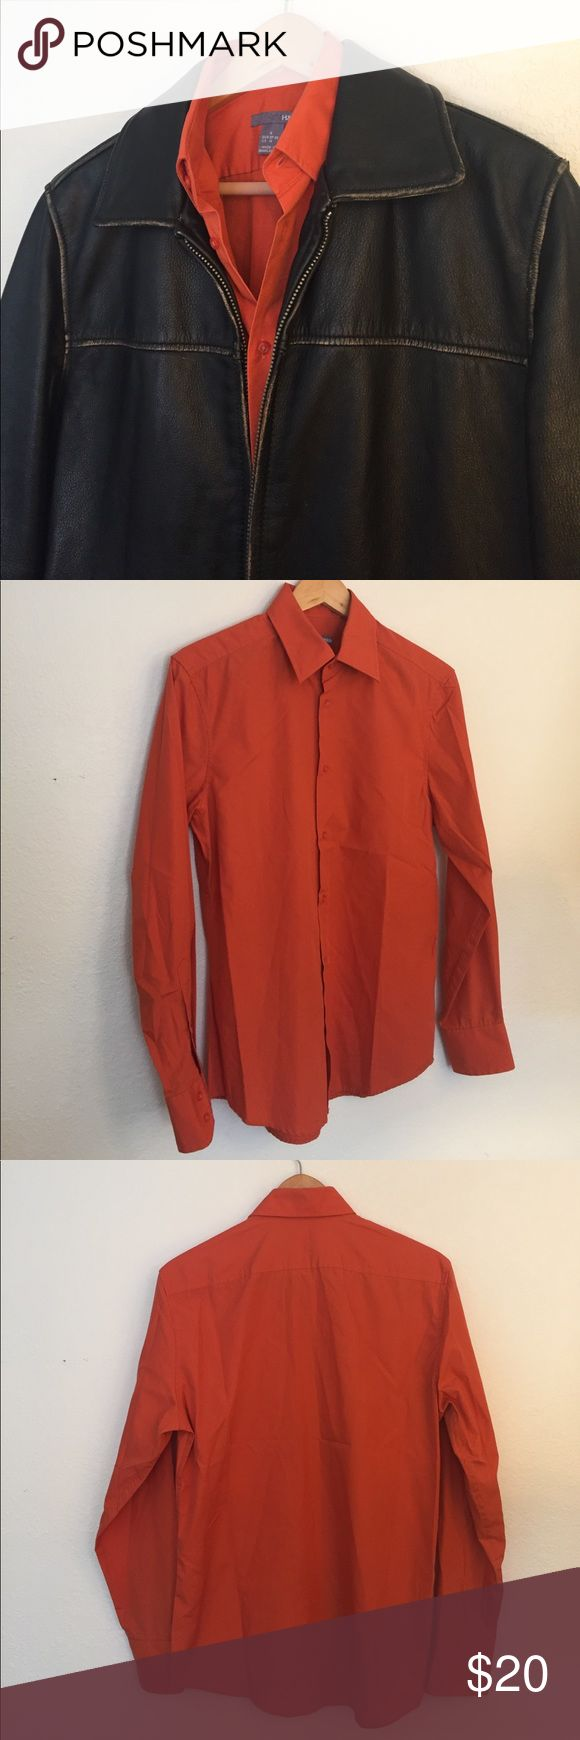 H&M Men's Dress Shirt - Orange! Pop some color under your favorite blazer or jacket with this deep orange dress shirt from H&M. Leather jacket for sale separately in my closet! H&M Shirts Dress Shirts